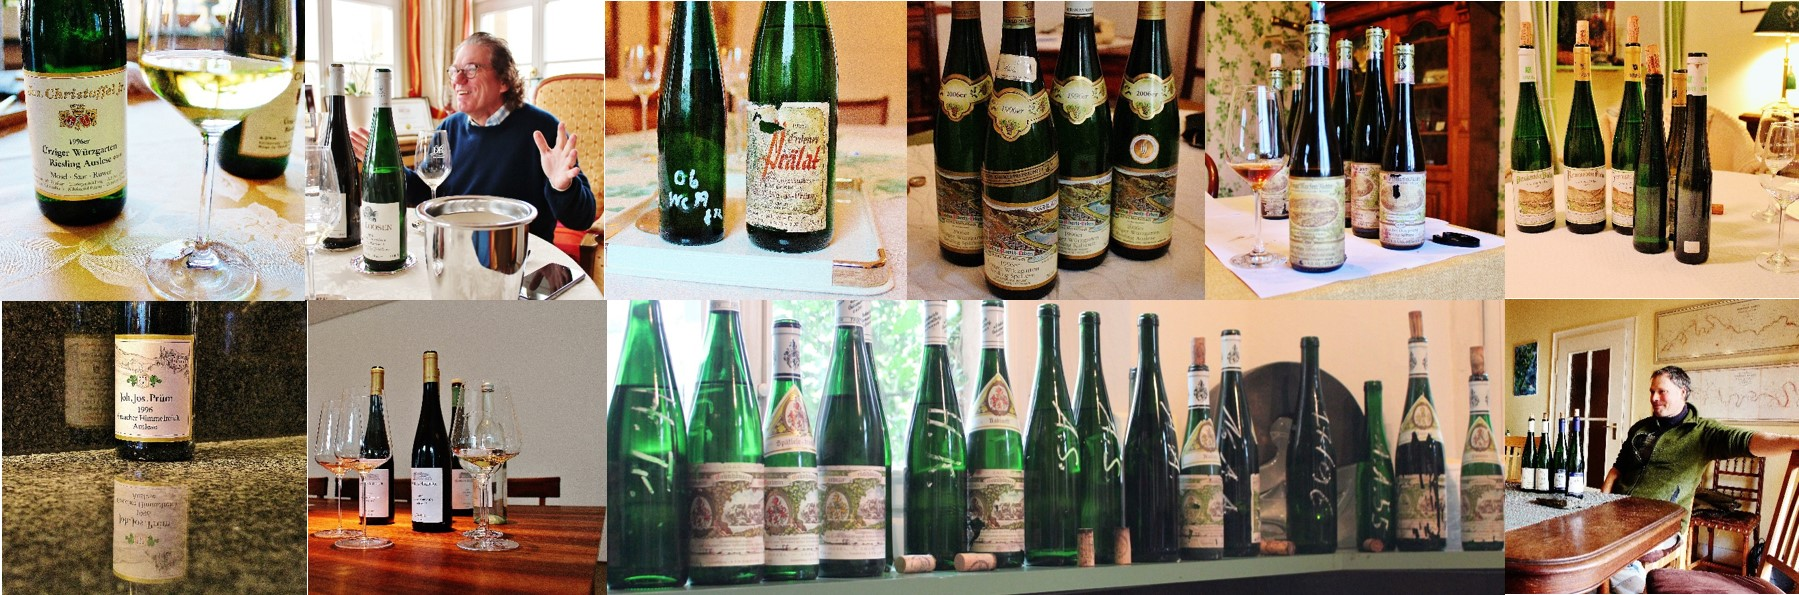 1996 Riesling Retrospective | 50 Wines Re-Tasted